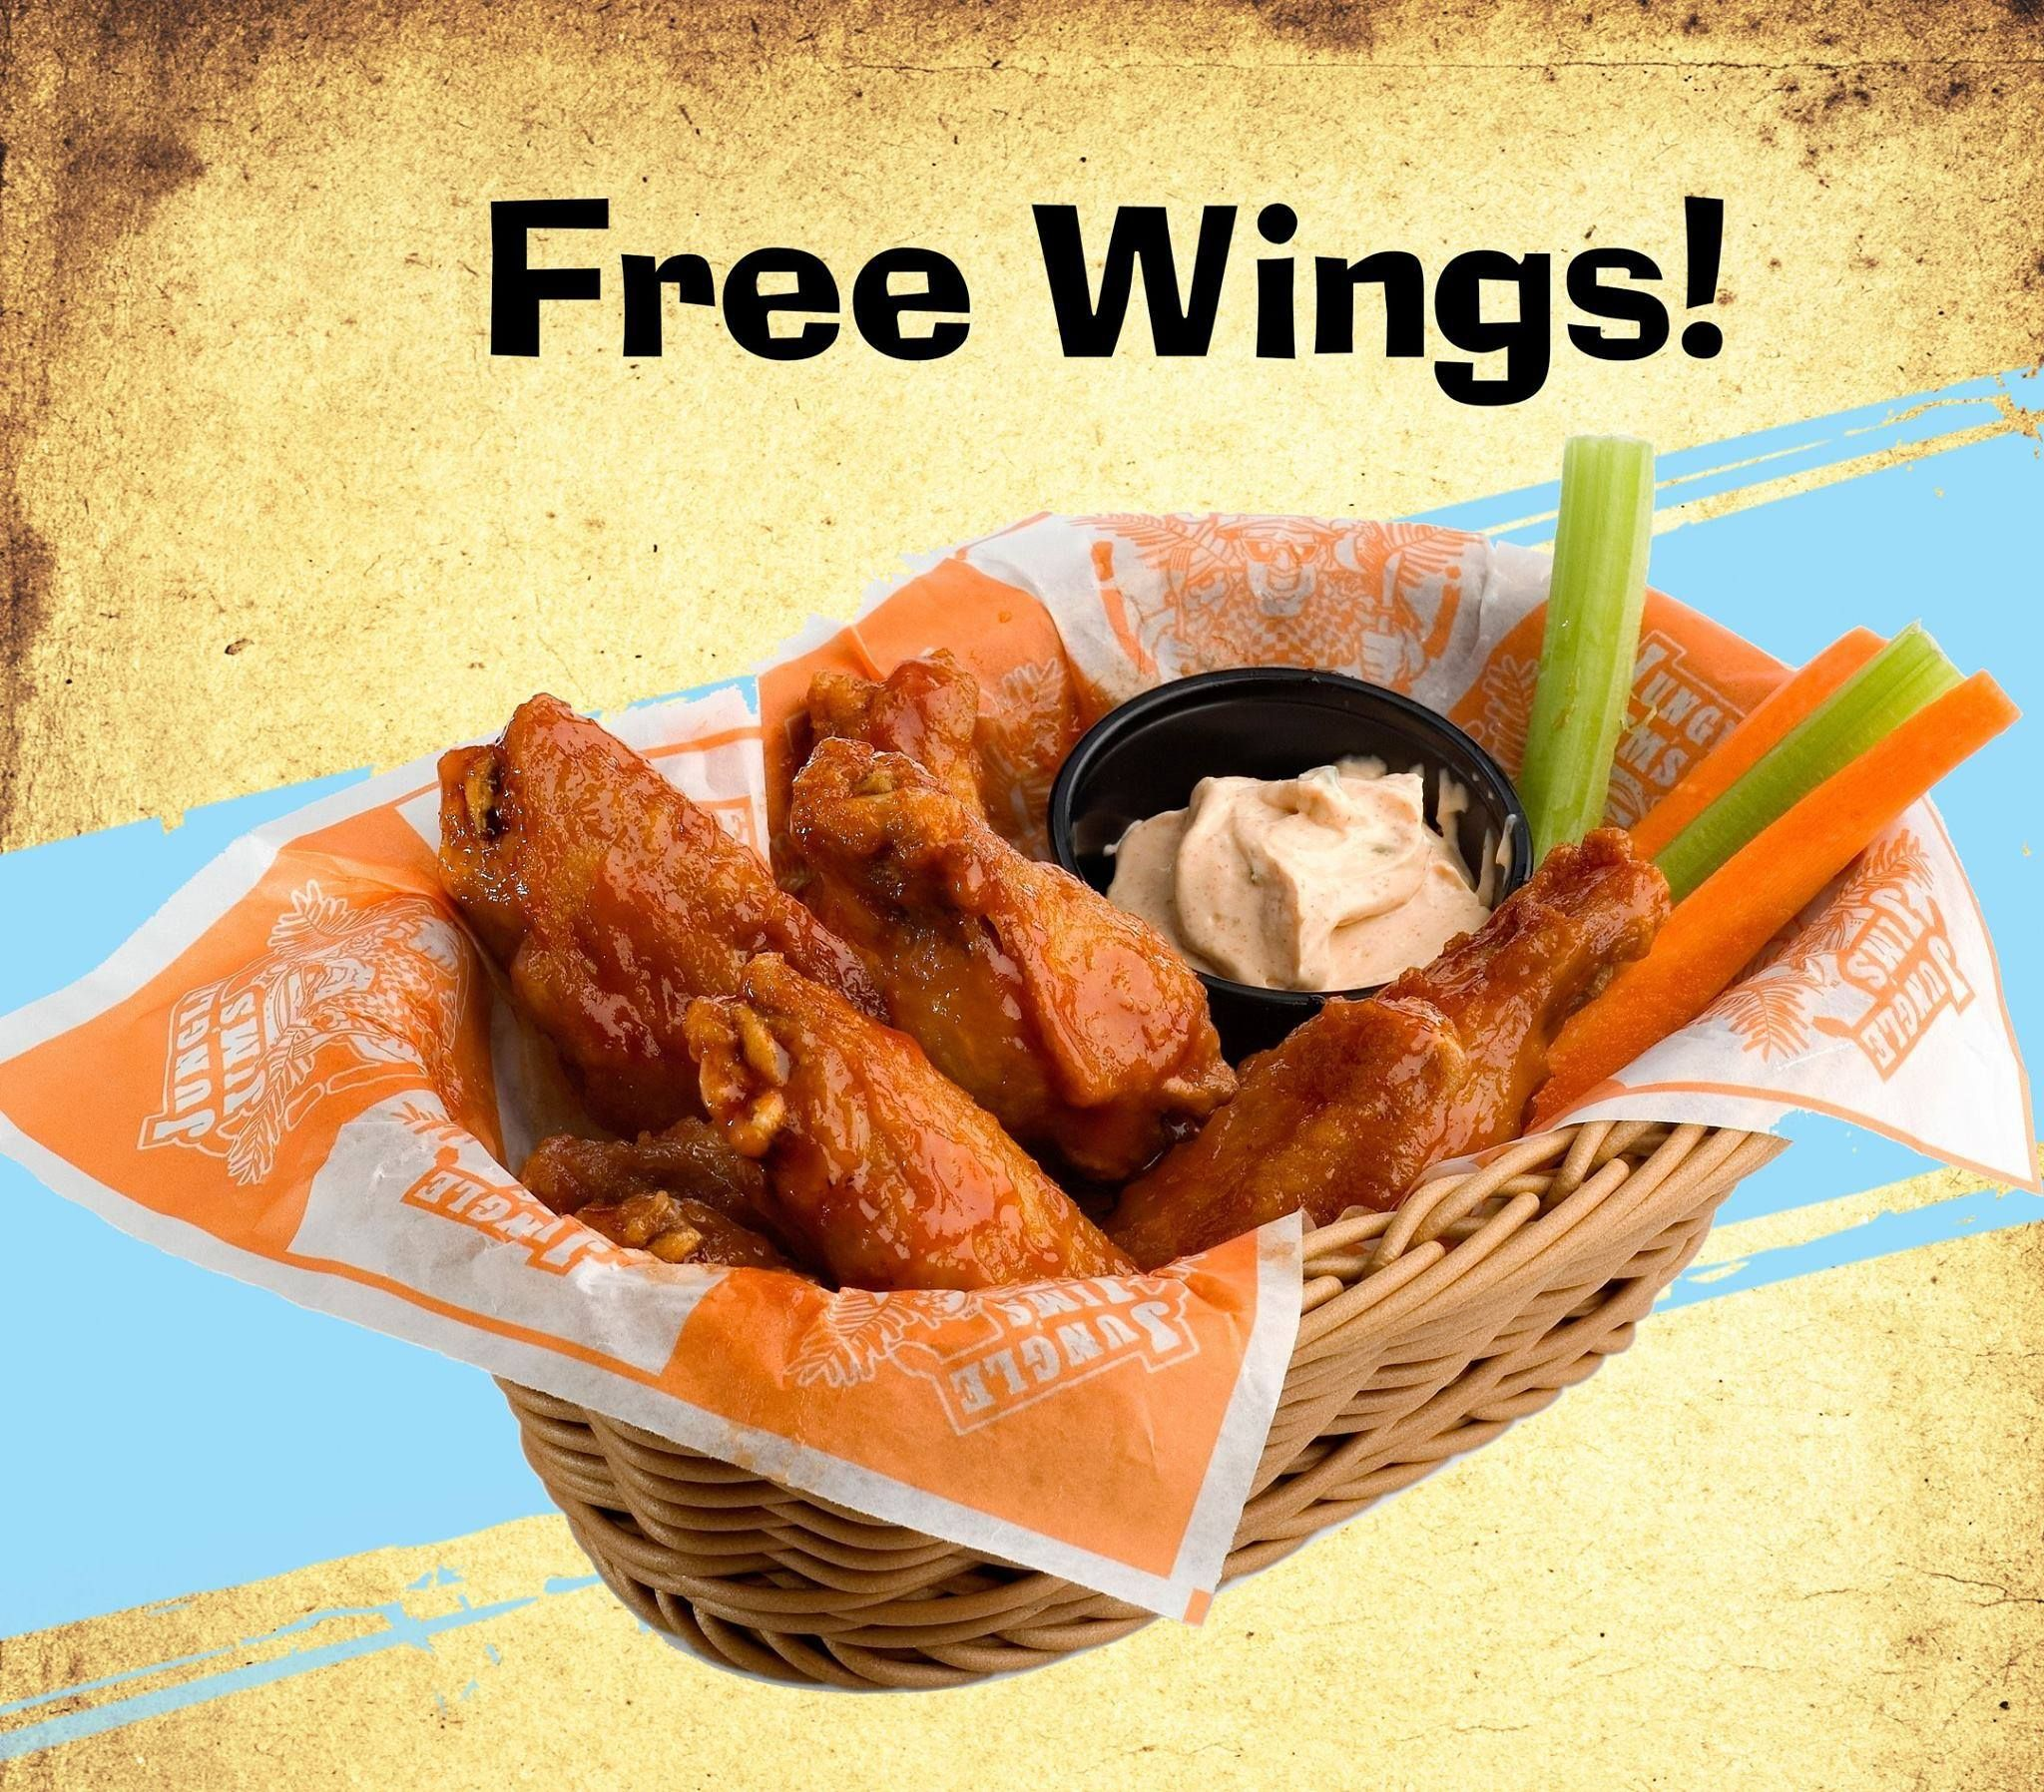 Weekly Jungle Giveaway! This week we're giving out 20 free pounds of Jim's famous buffalo wings! Like, share or leave a comment for your chance to win!